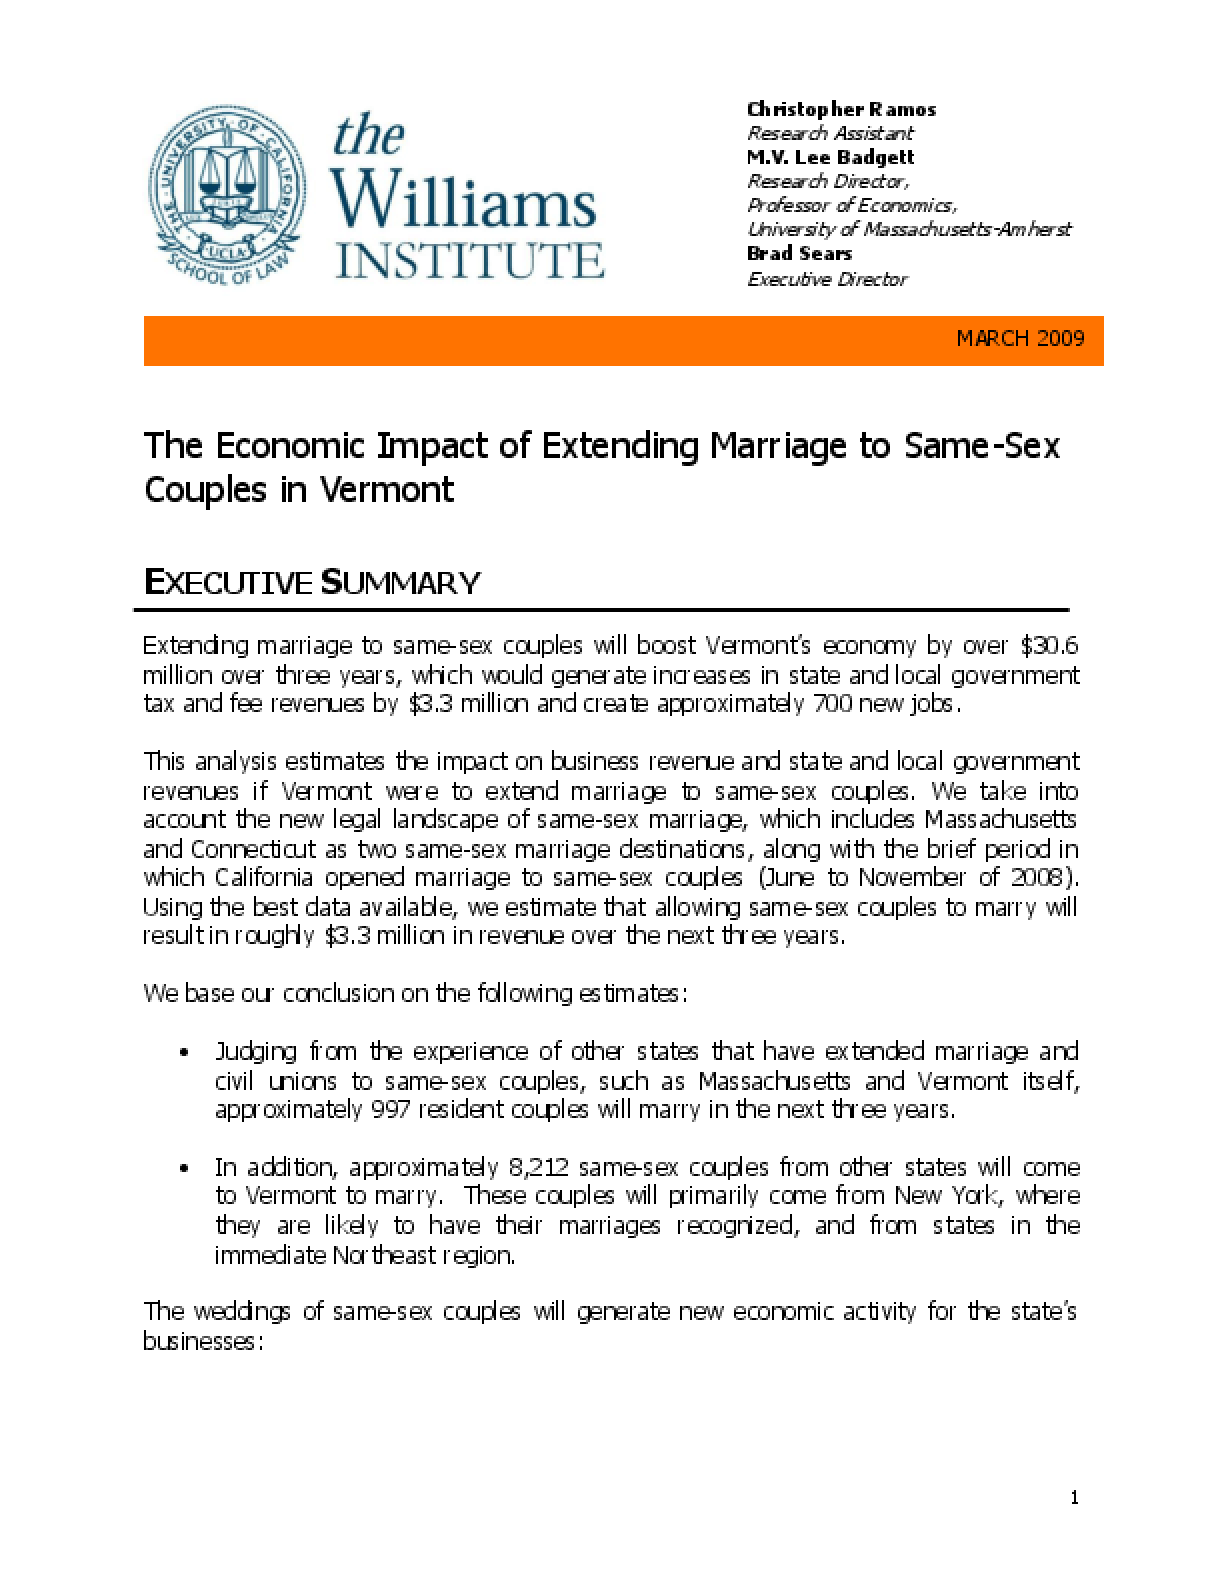 The Economic Impact of Extending Marriage to Same-Sex Couples in Vermont